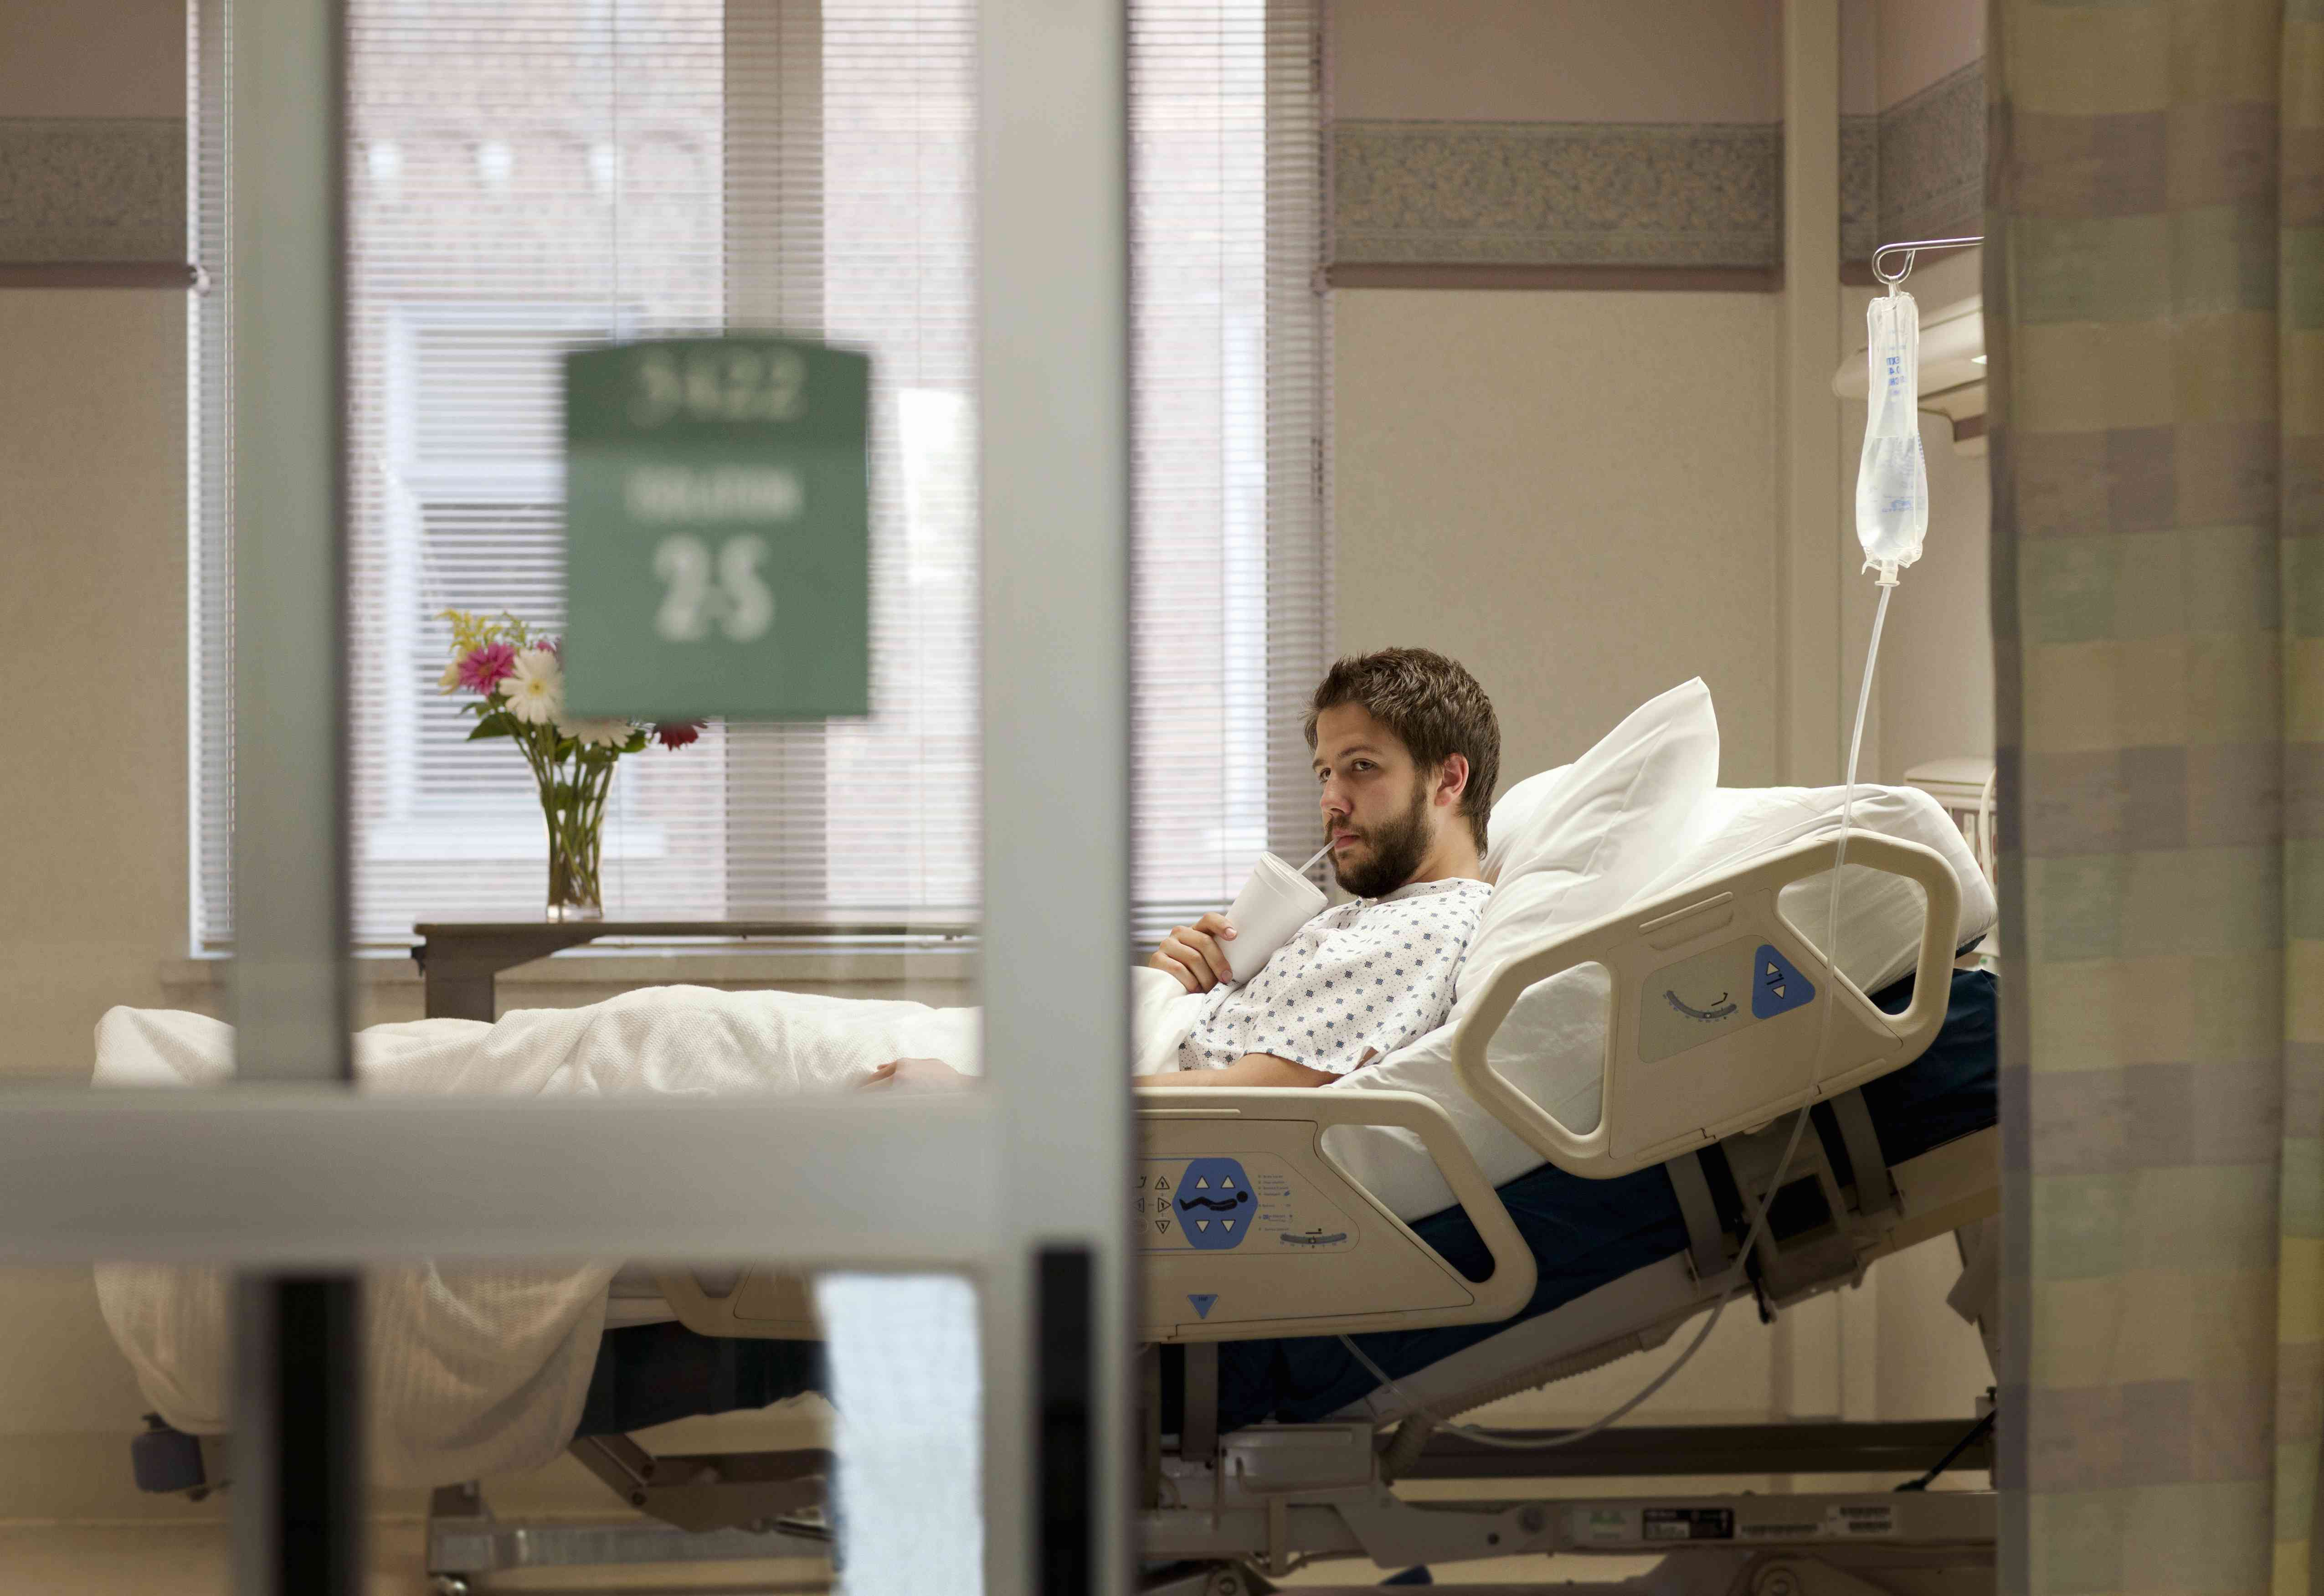 Man drinking from cup in hospital bed